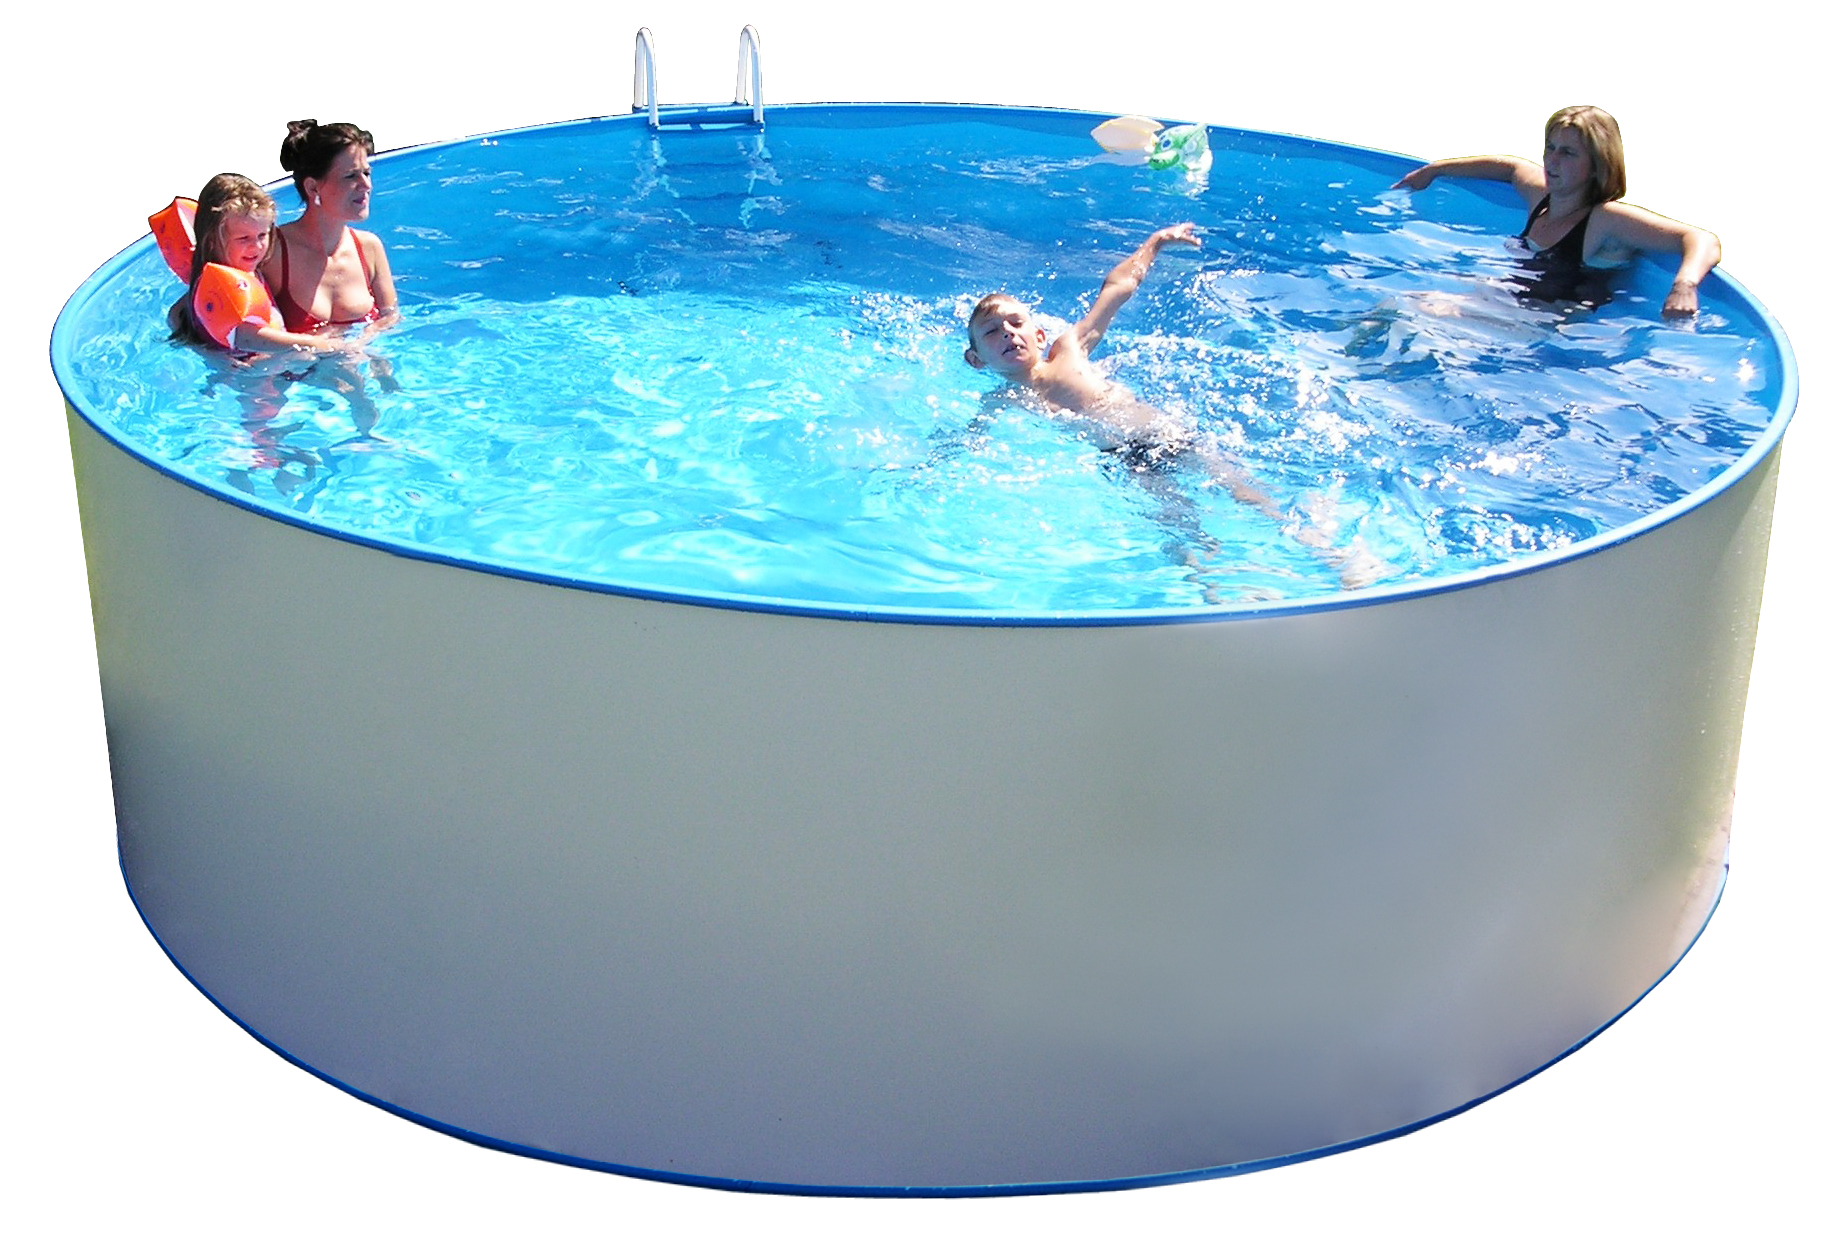 Rundbecken 400x110cm von Planet Pool